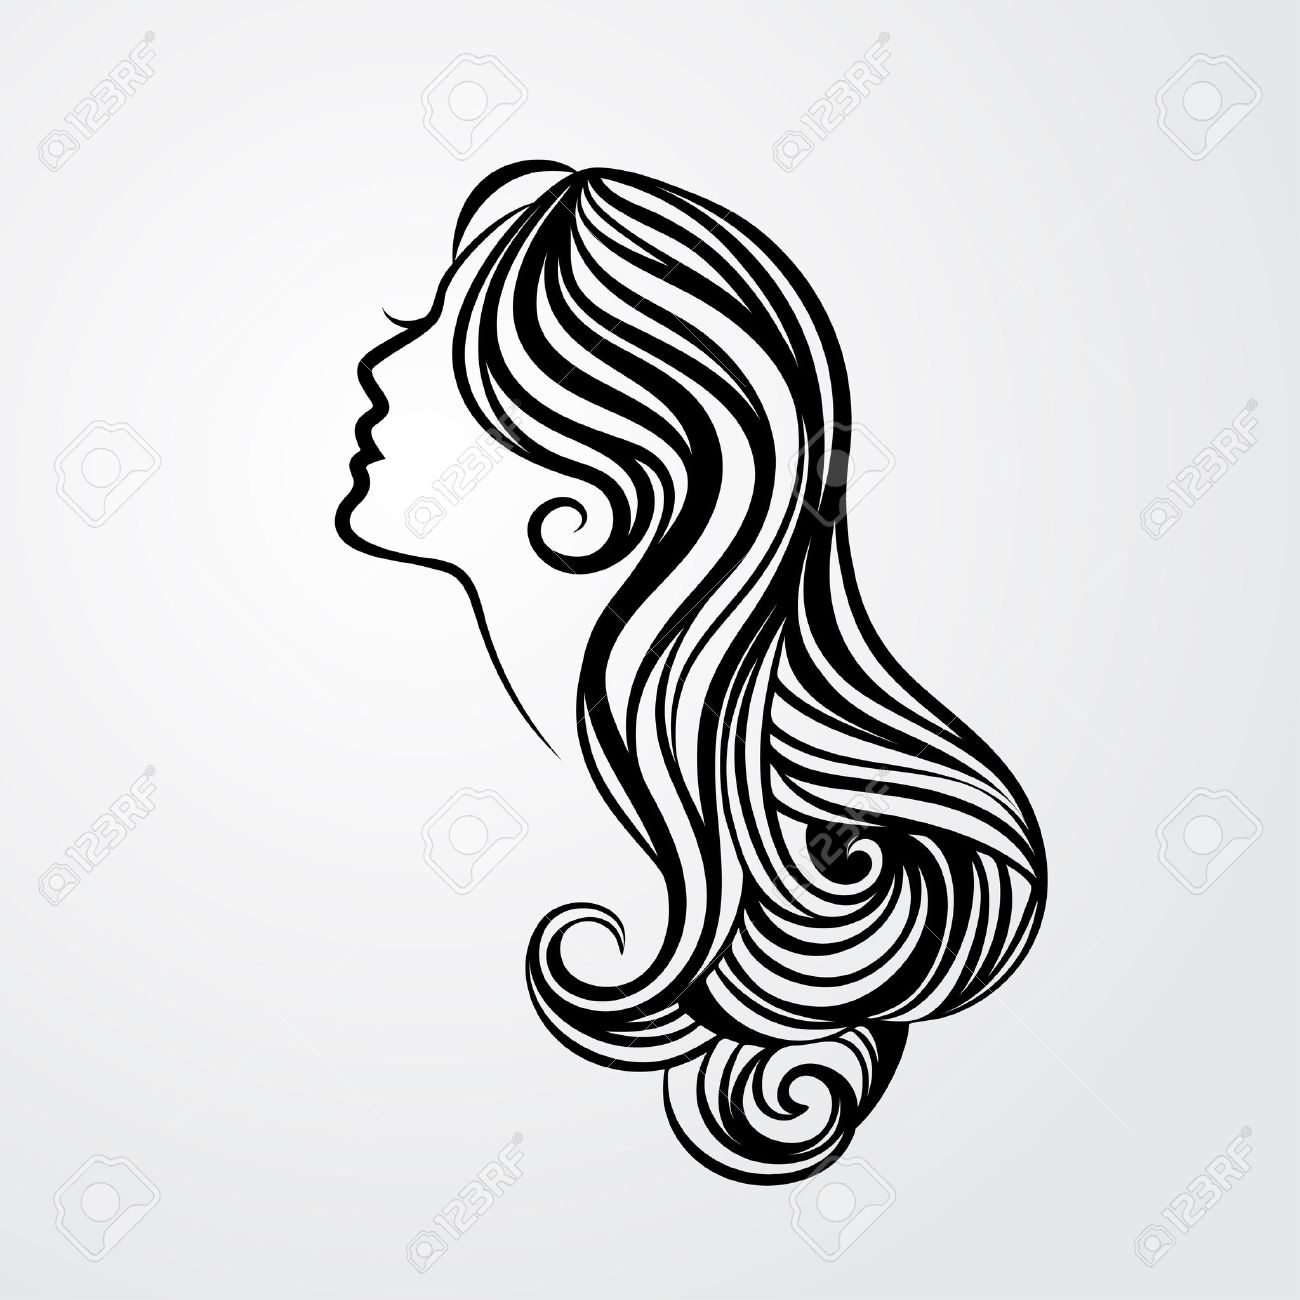 Hair salon chair isolated stock photos illustrations and vector art - Hair Care Lady With A Long Hair Portrait Isolated On White Background Vector Illustration